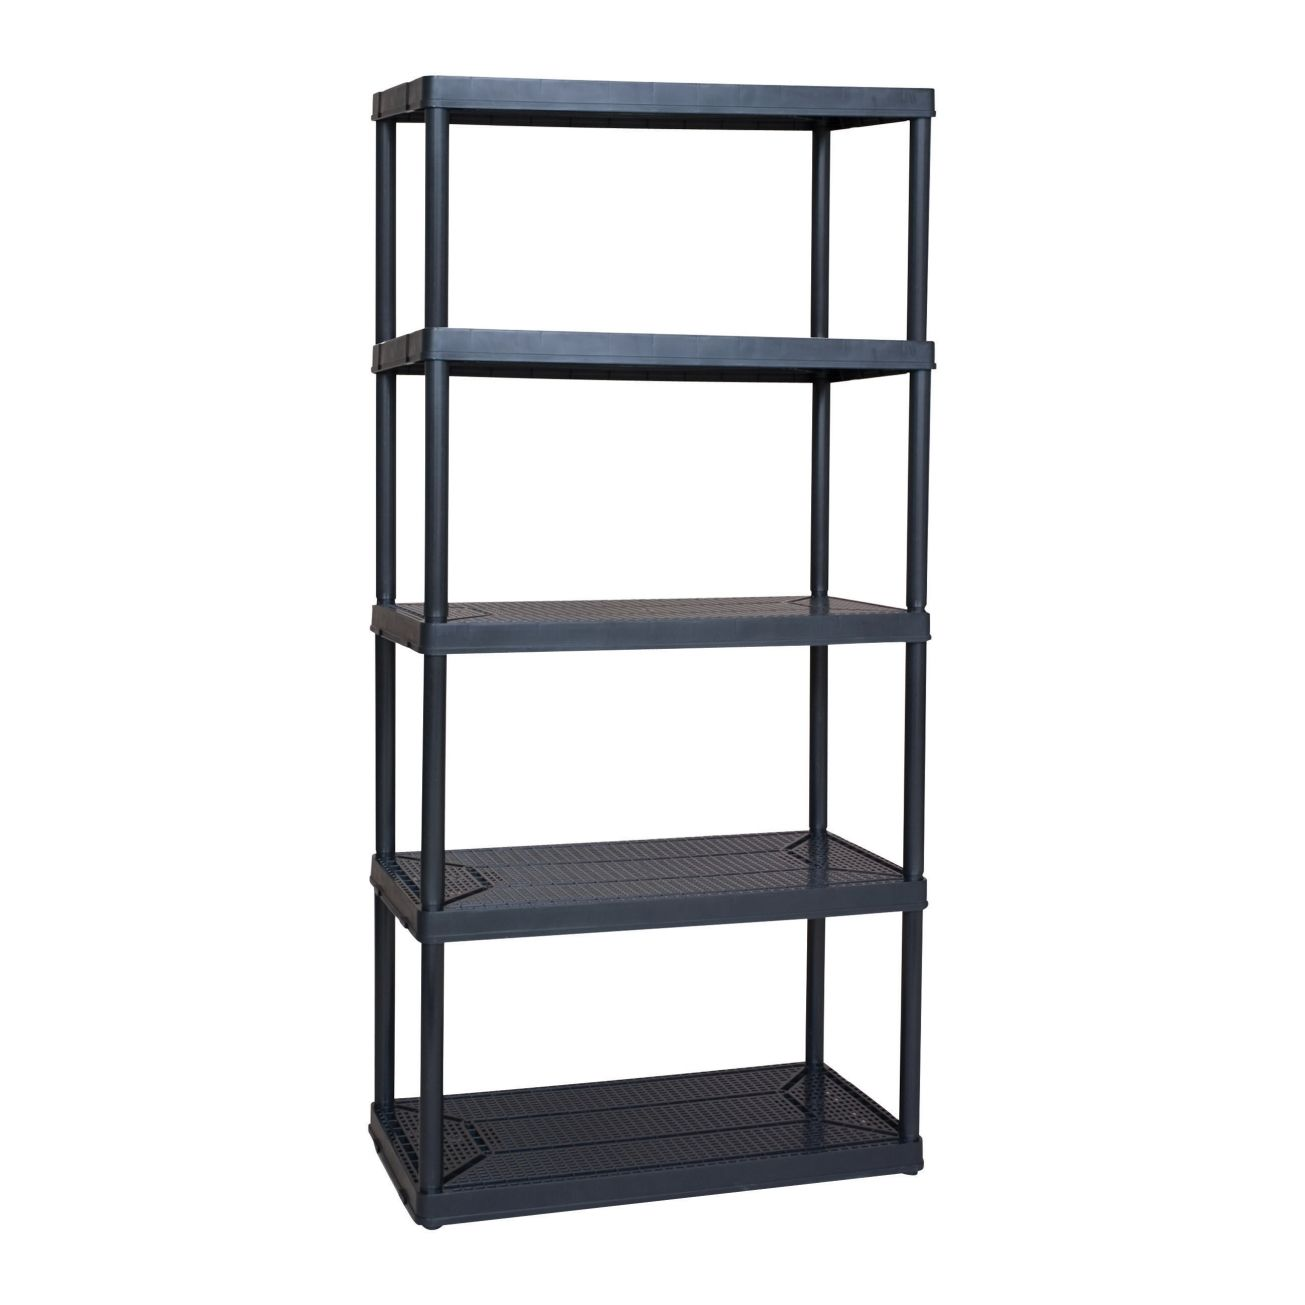 MaxIt 5 Tier Ventilated Plastic Shelving 18in D X 36in W 72in H 91005 UnitsStorage ShelvingGarage